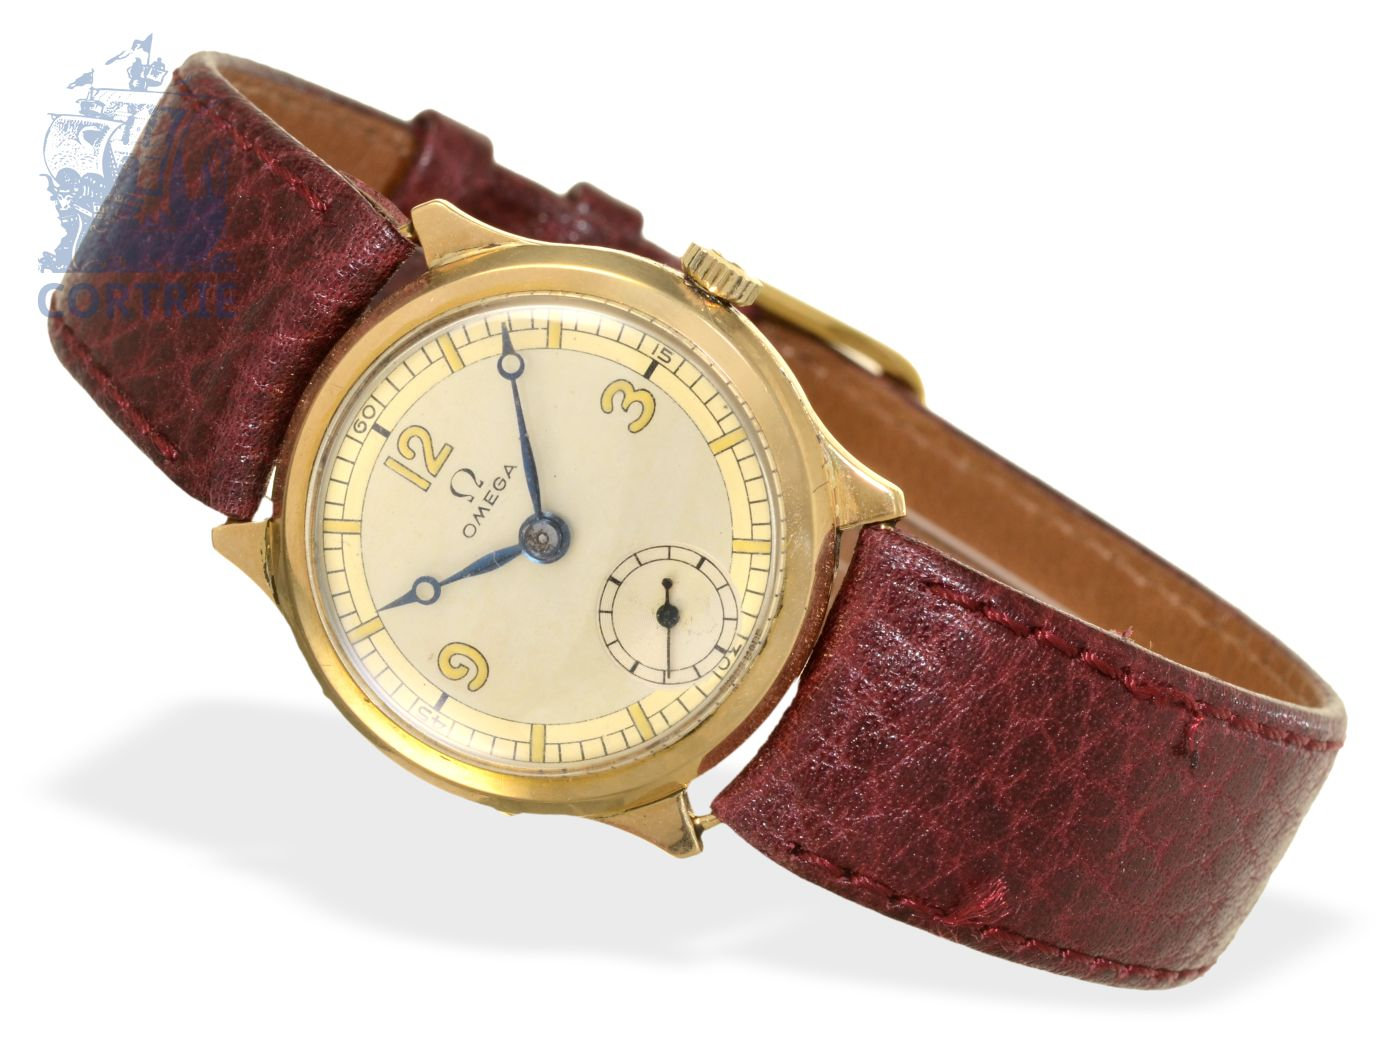 Wristwatch: early and small 18 K gold gentlemen's watch by Omega, from 1935-